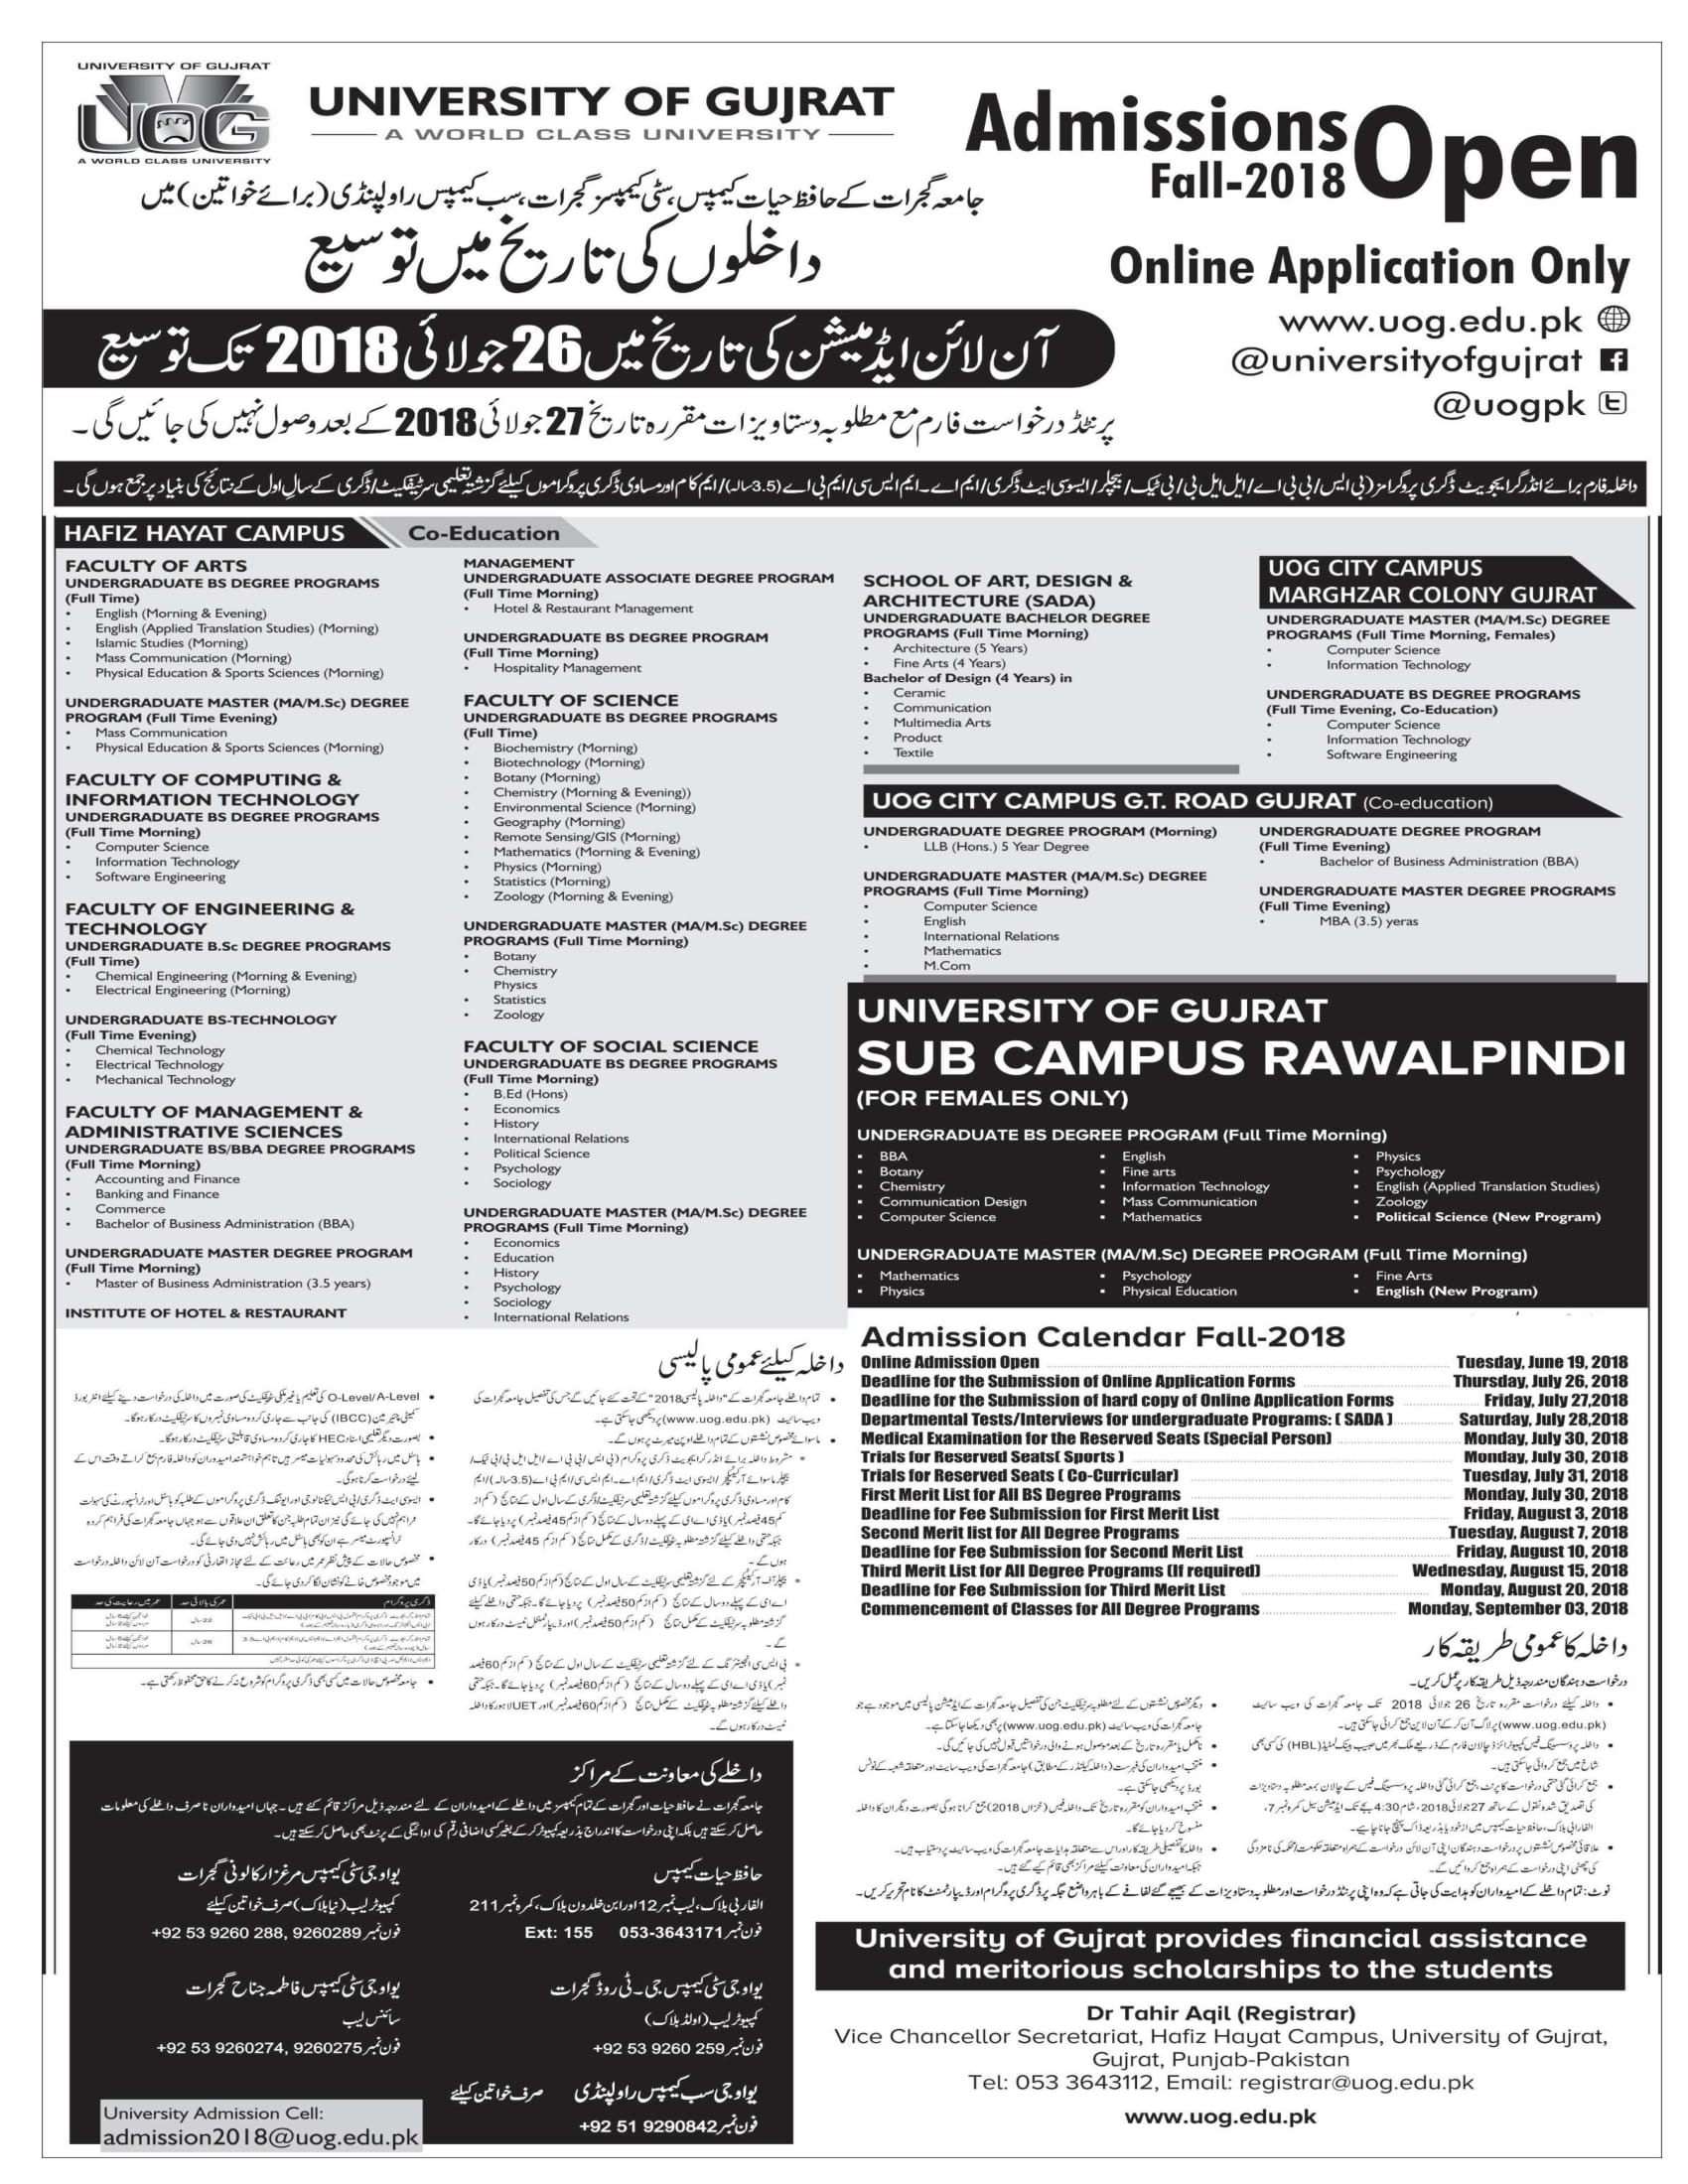 Deadline Extended for University of Gujrat (UOG) Admissions Fall 2018